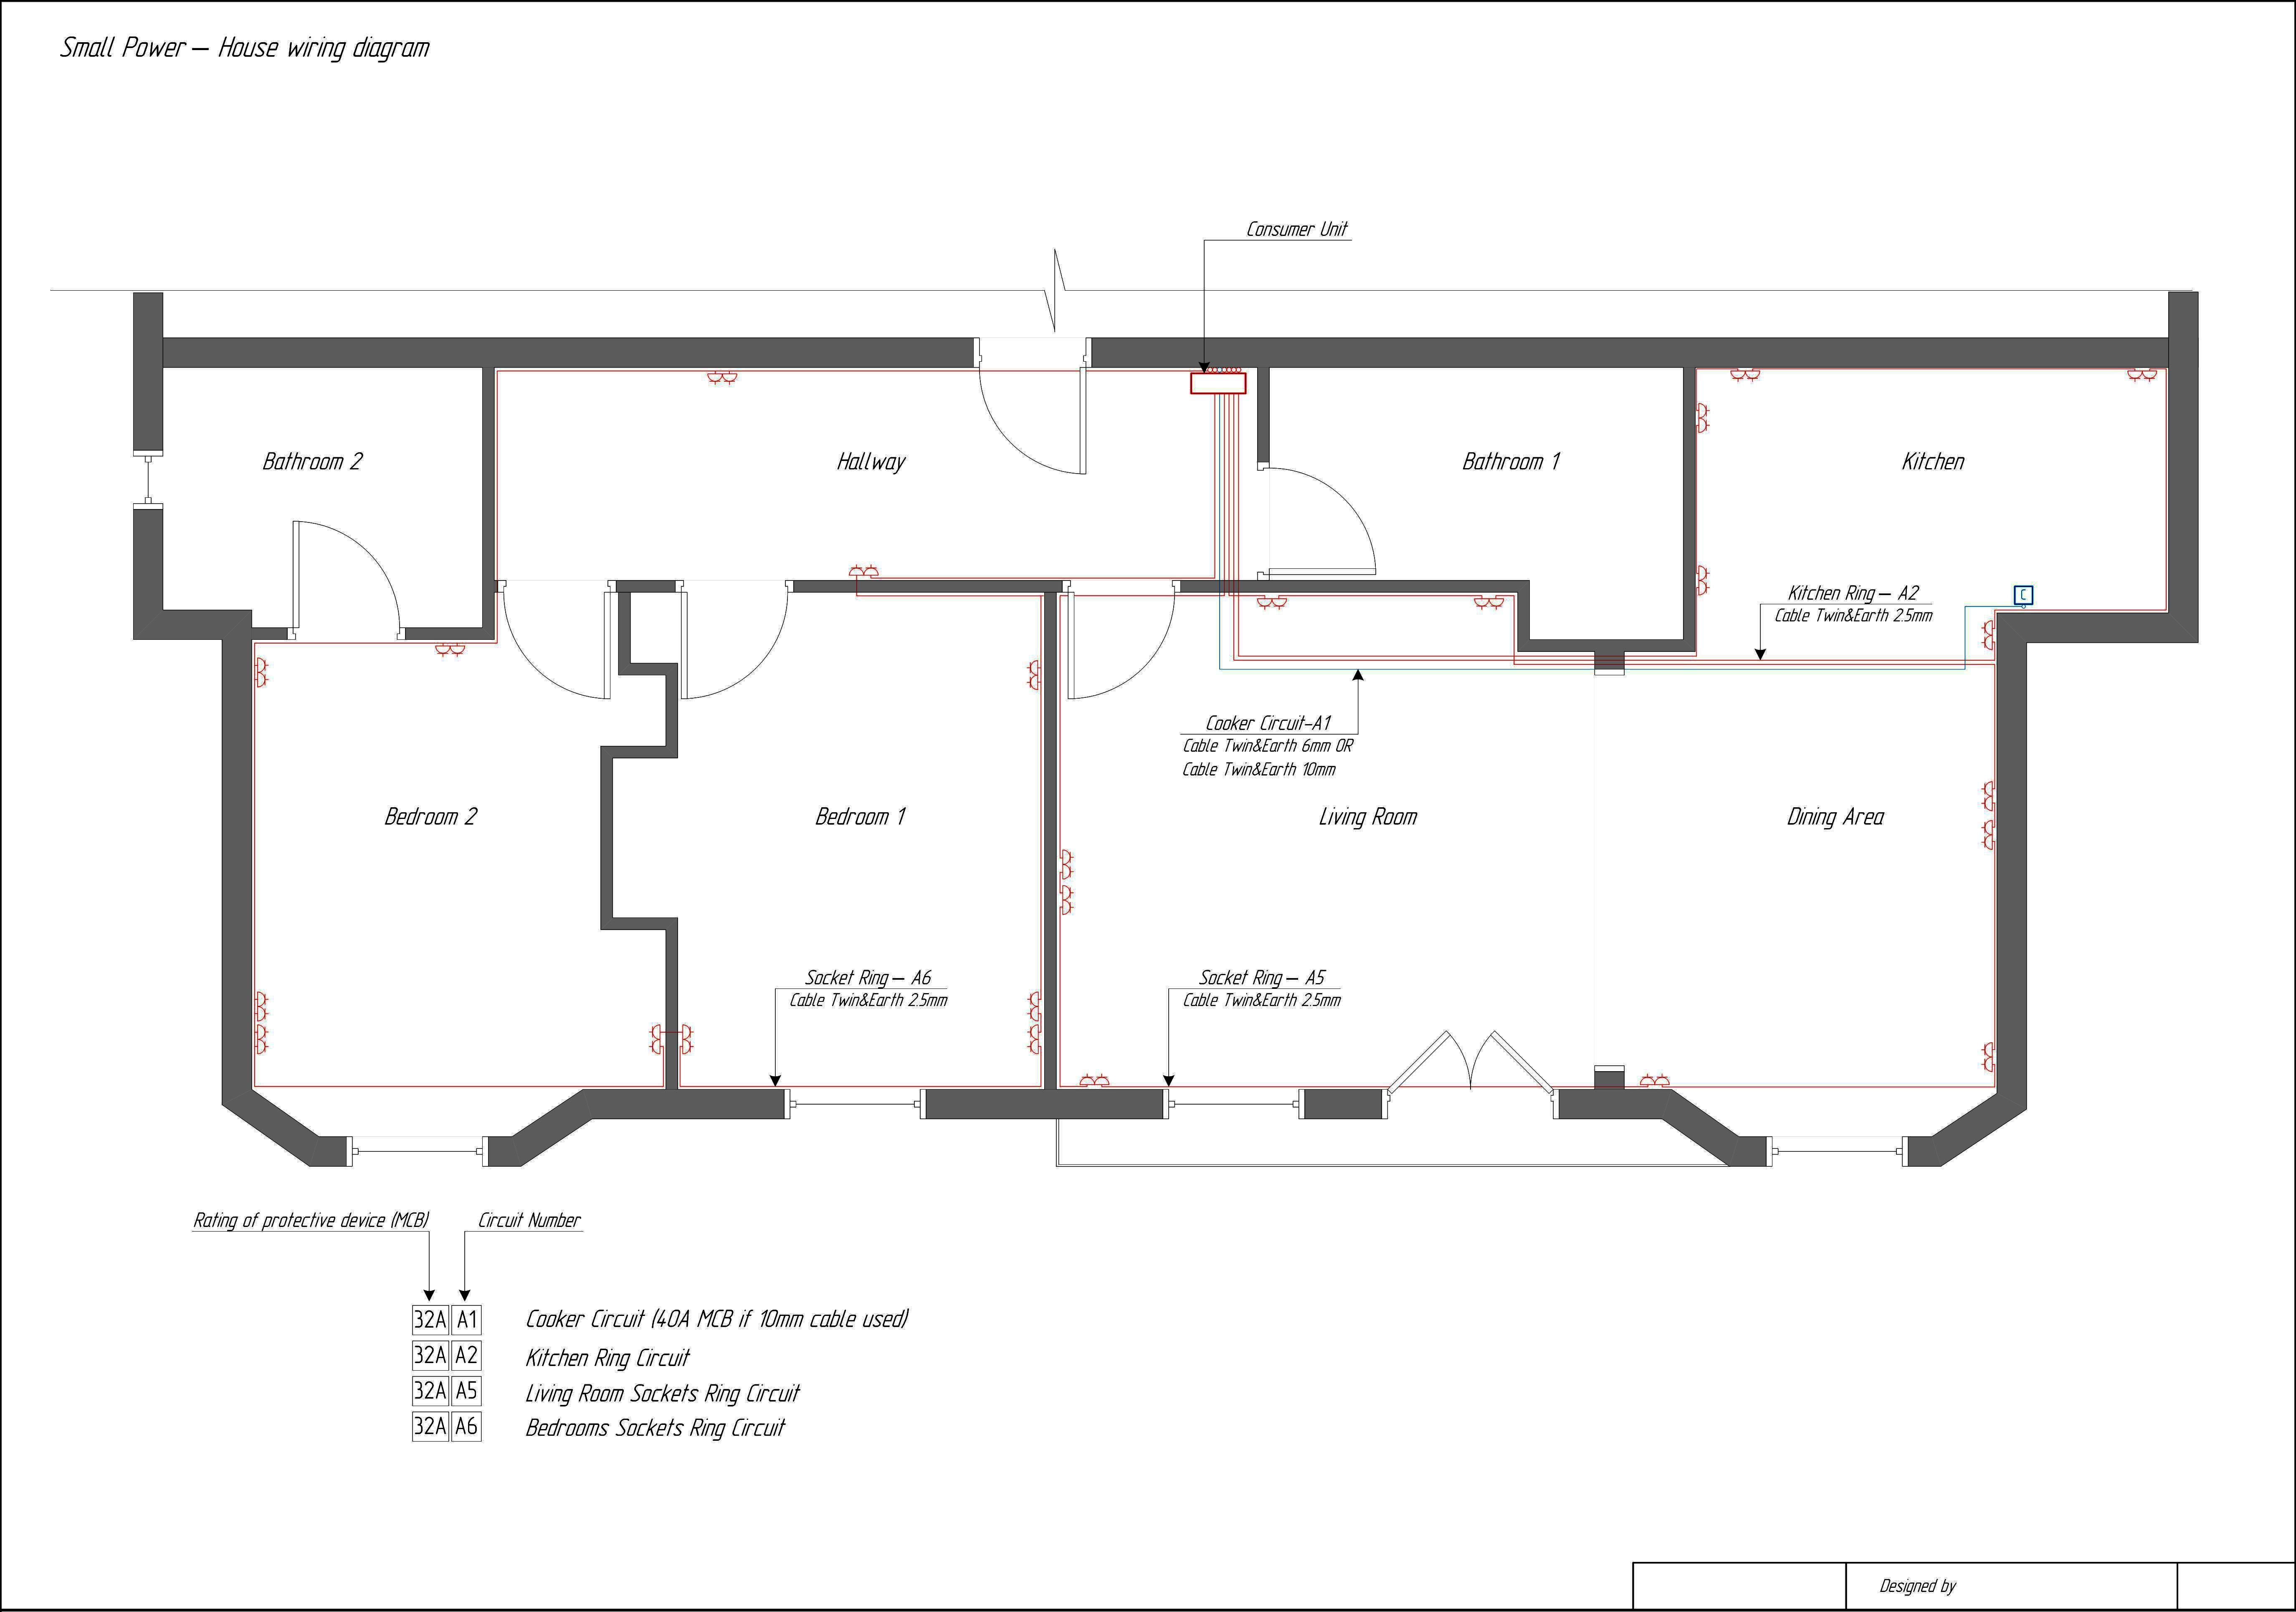 House Schematic Wiring Diagram - Wiring Diagrams Thumbs - Residential Wiring Diagram